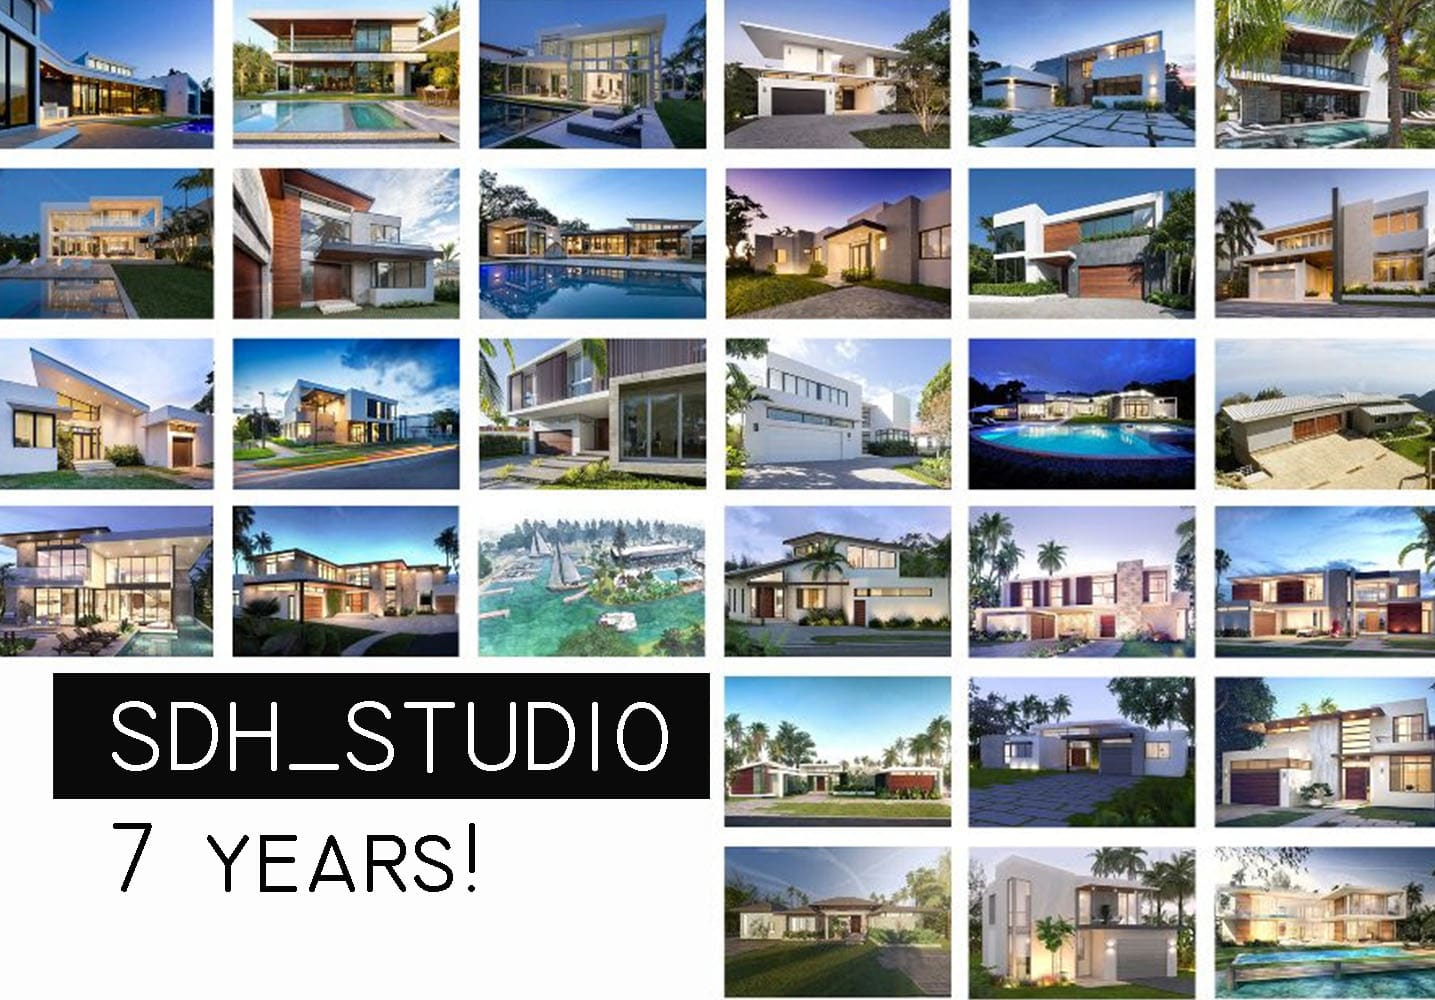 SDH Studio 7 years!